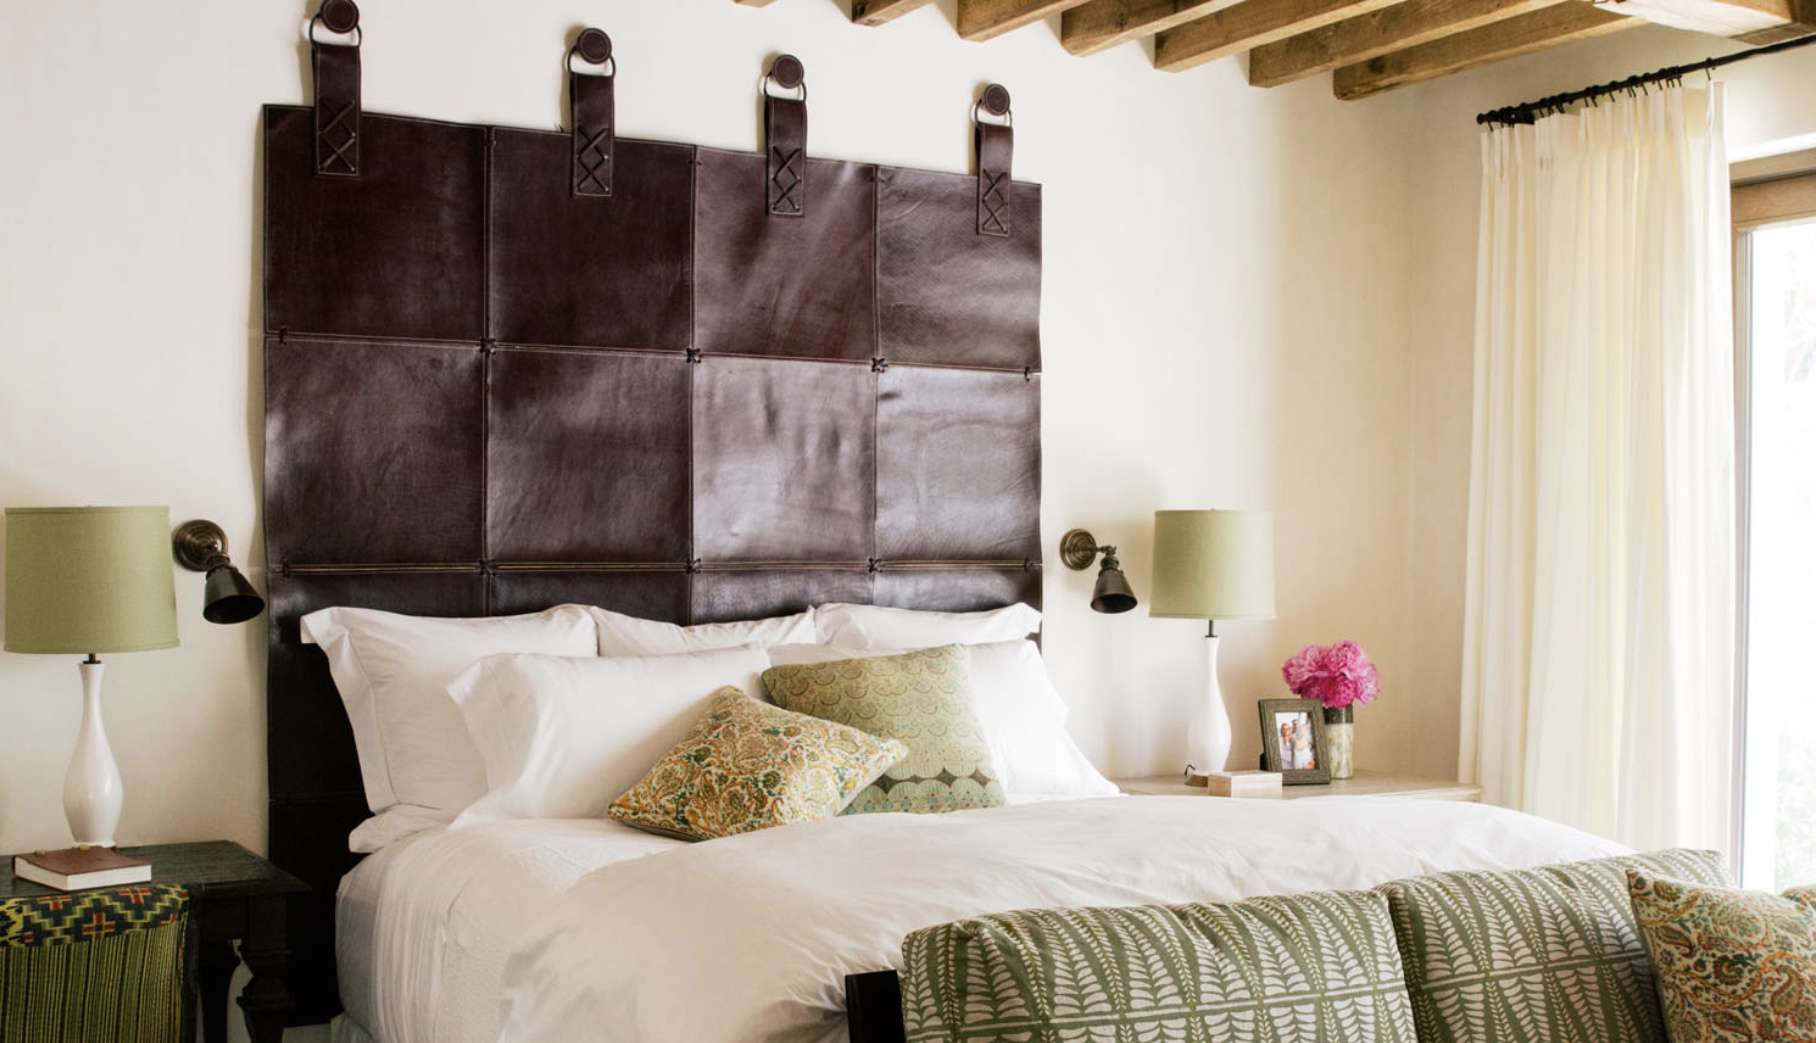 earthy style mediterranean with exposed wooden beams, green colored fabrics, leather headboard